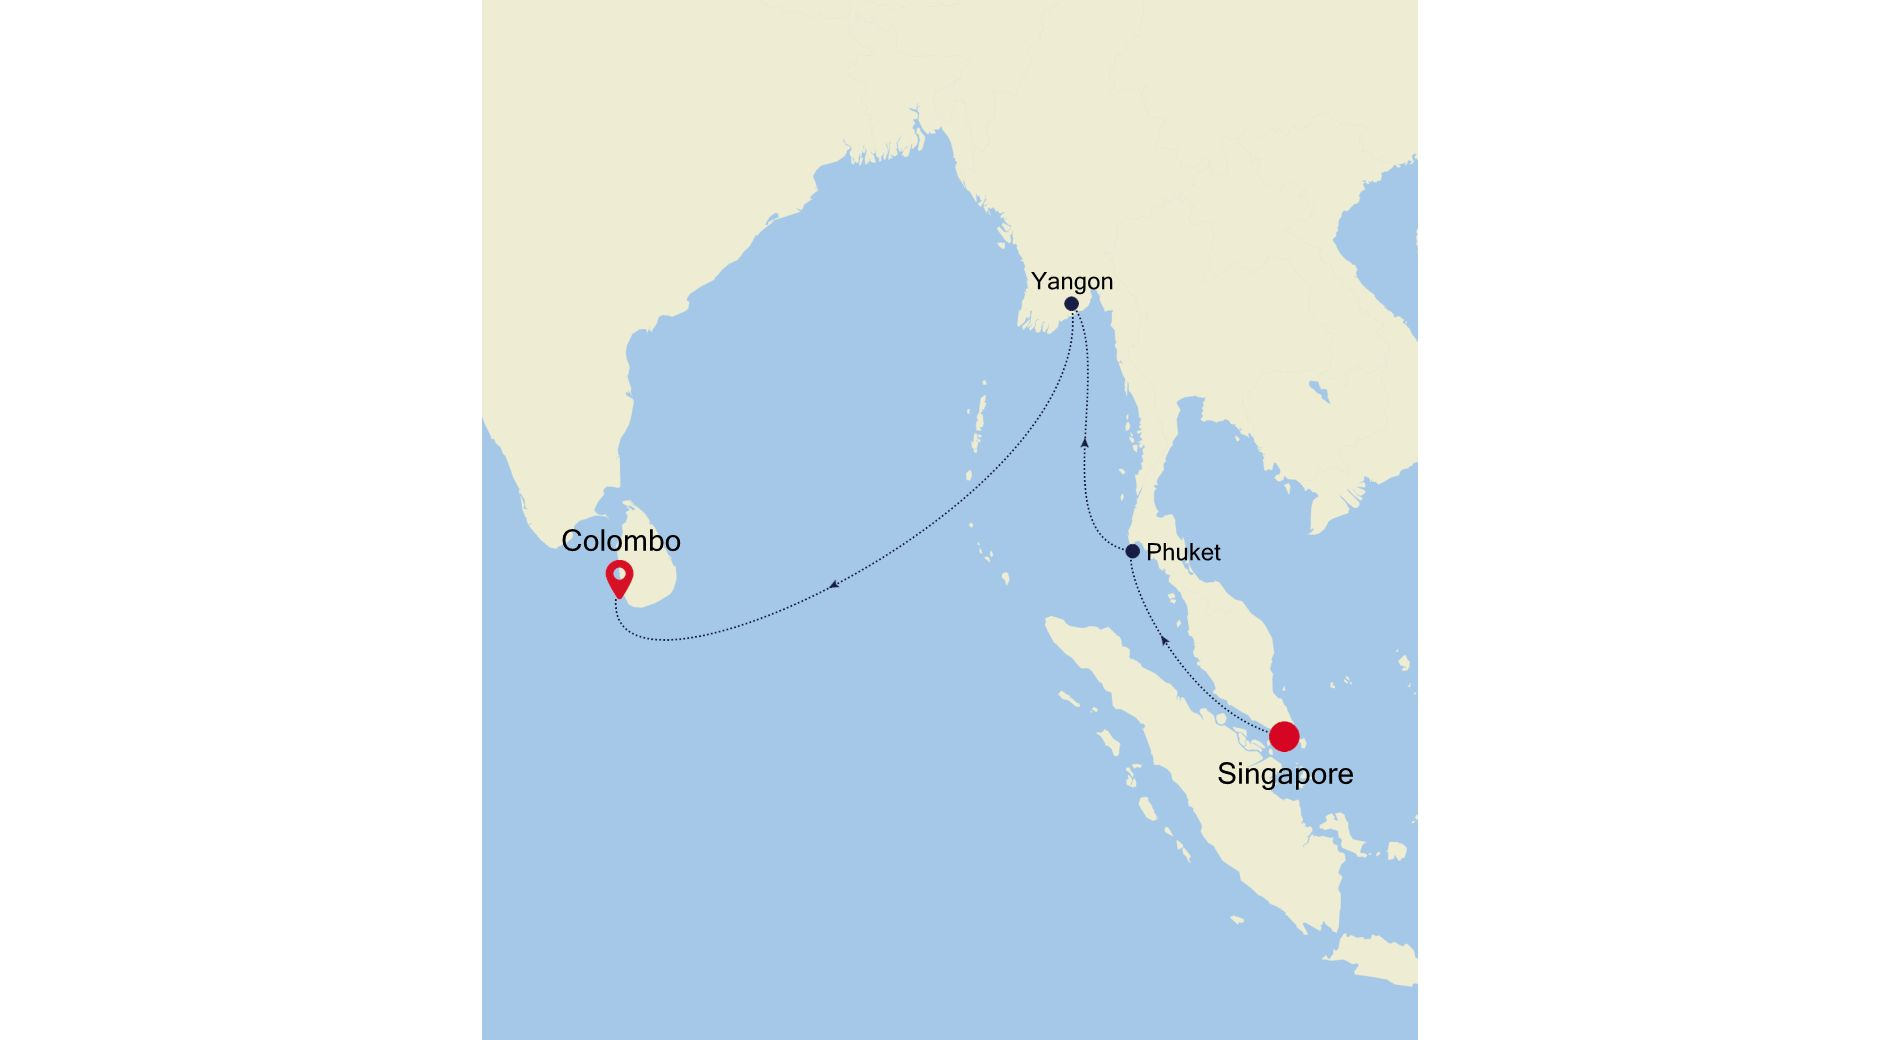 5005D - Singapore to Colombo